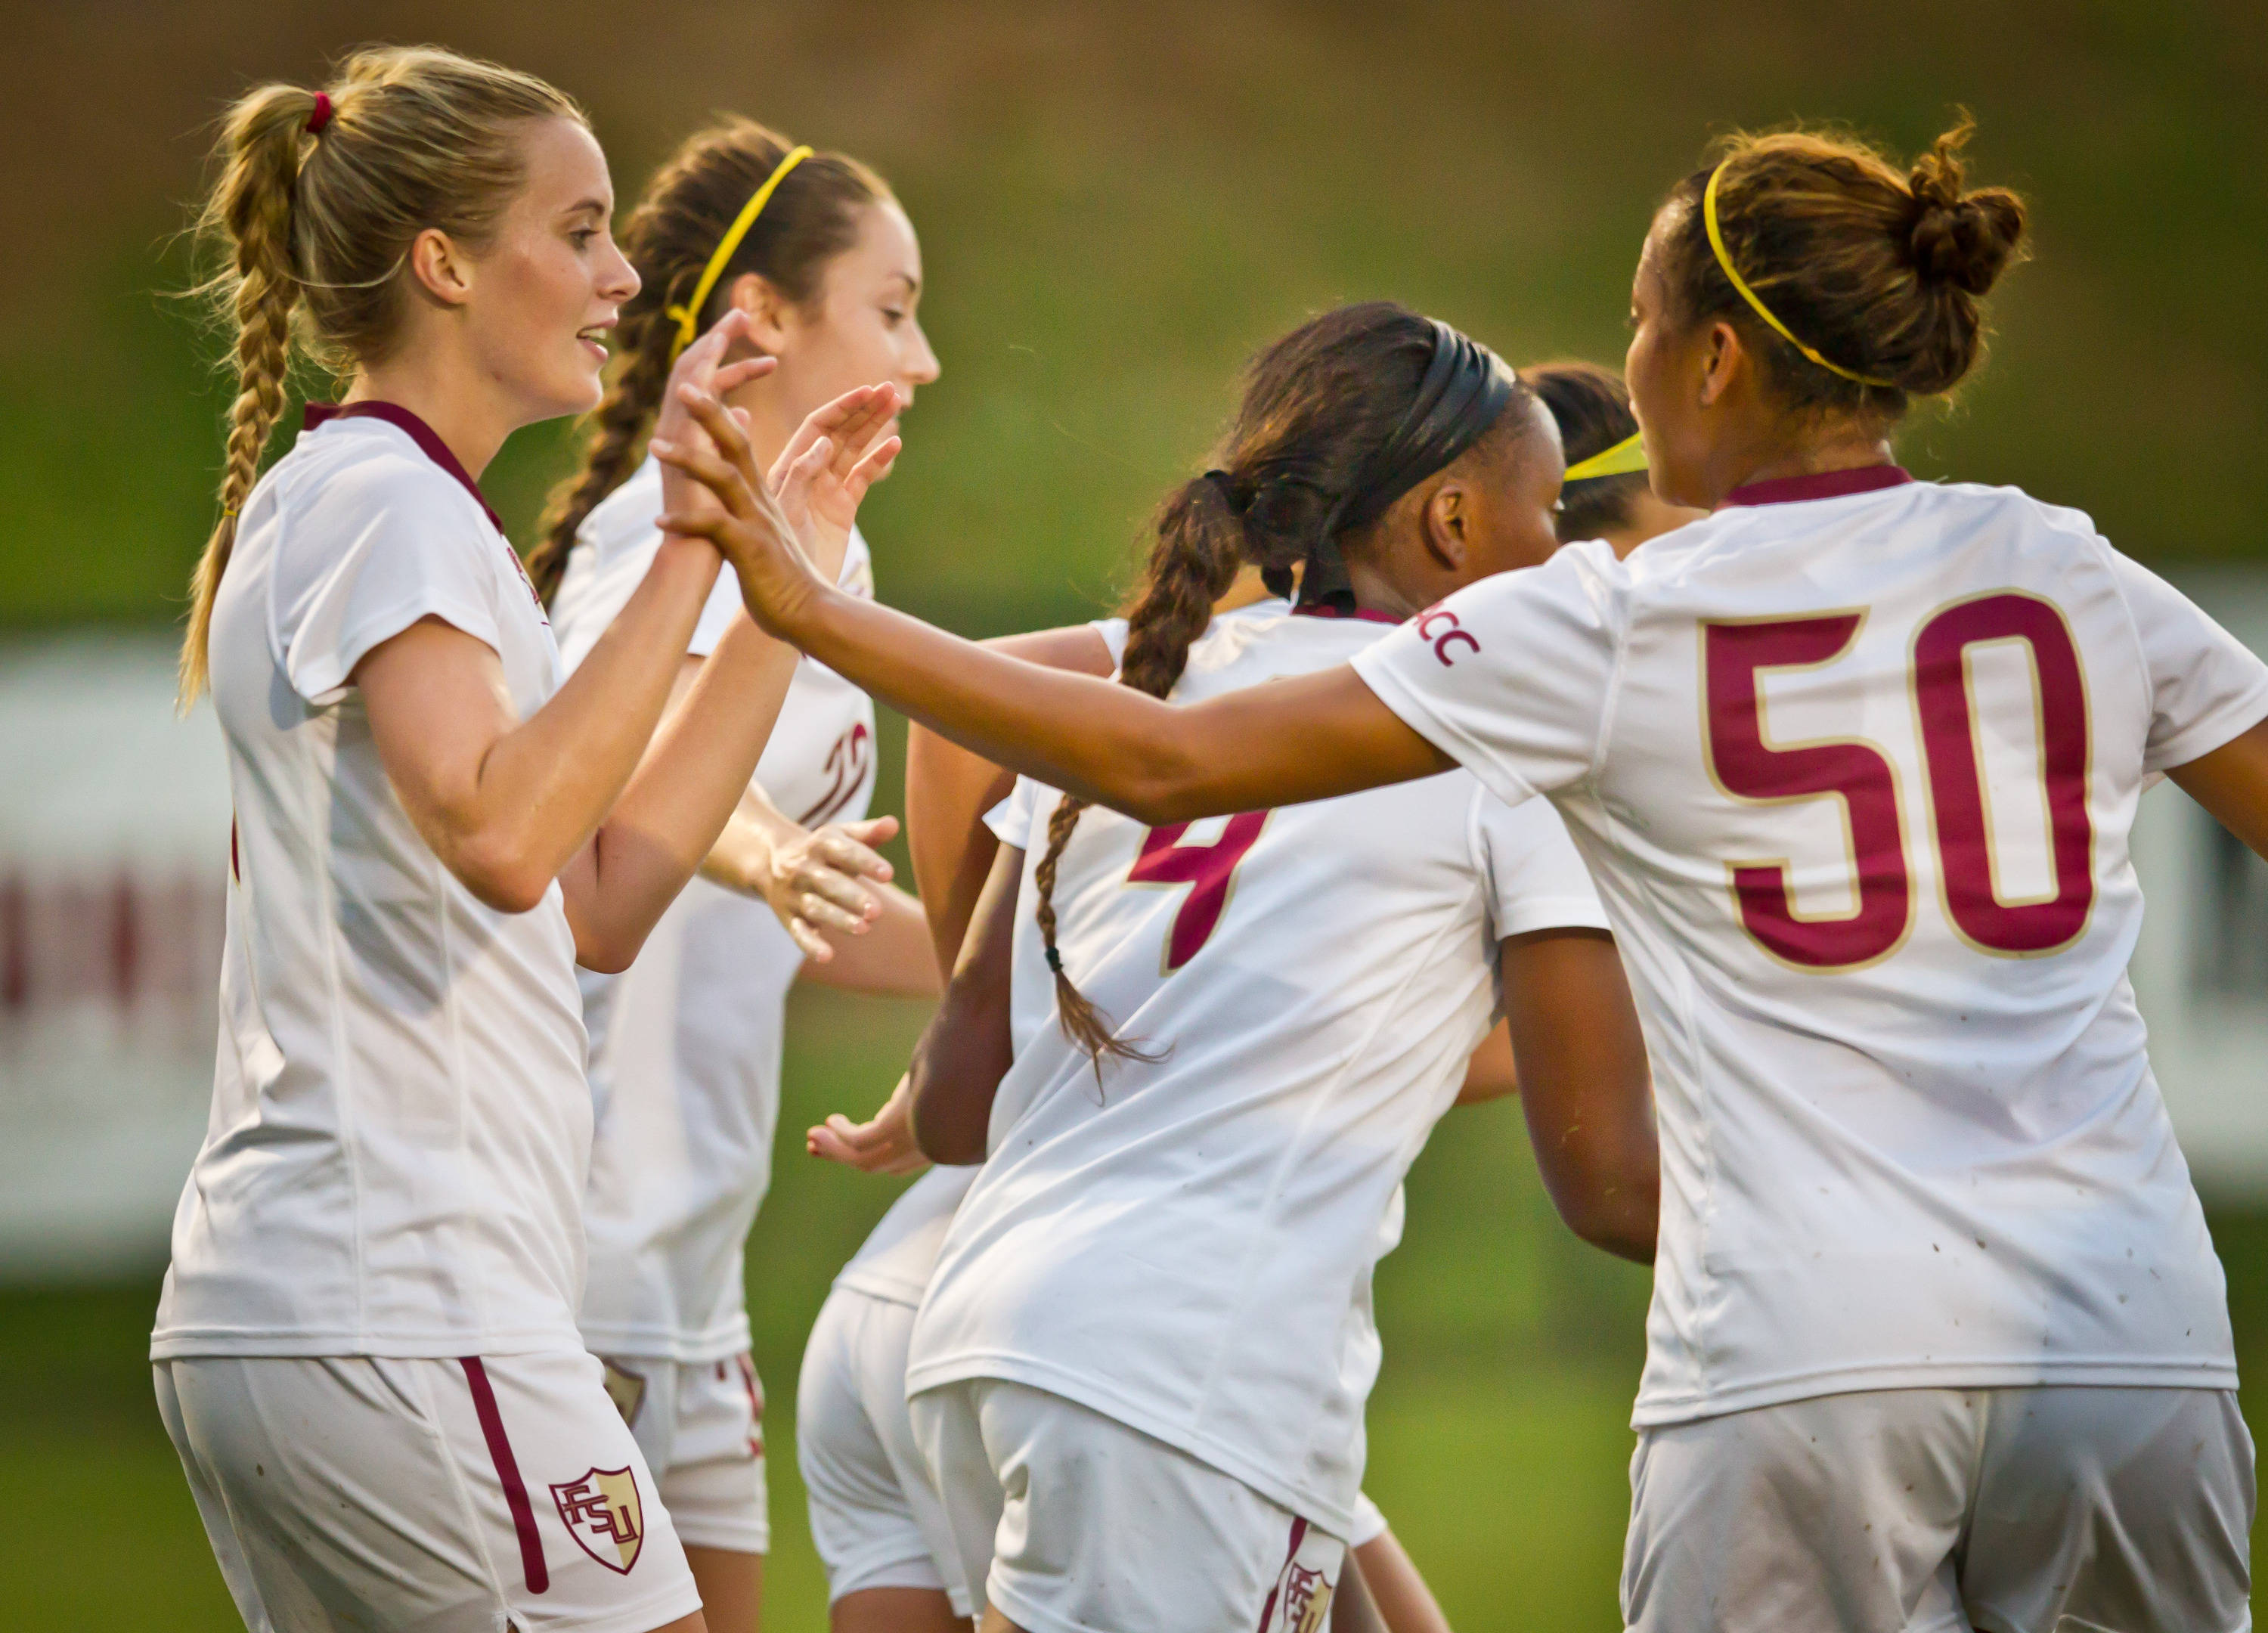 The Seminoles celebrate after a goal by Berglind Thorvaldsdottir